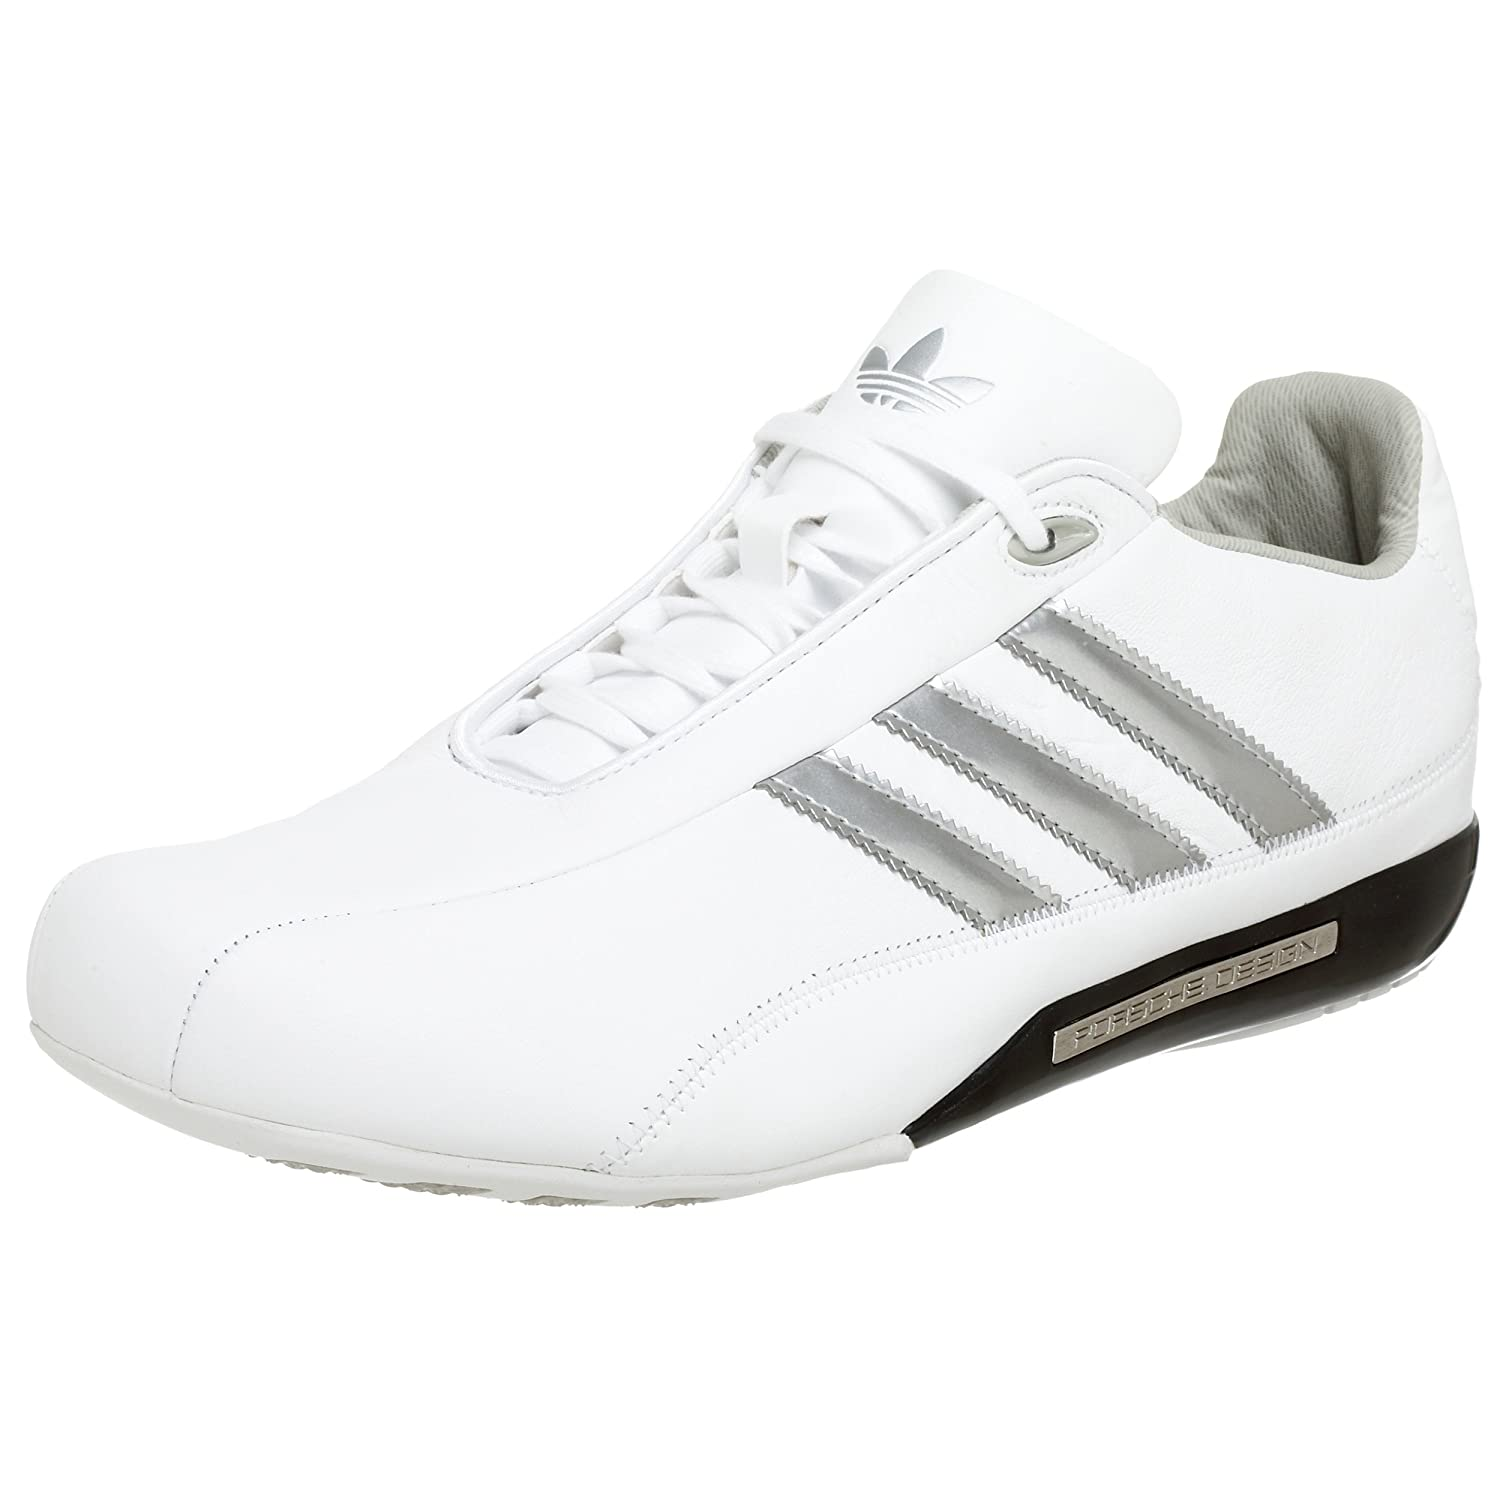 buy popular 6aa44 12bc9 Amazon.com | adidas Originals Men's Porsche Design S2 ...